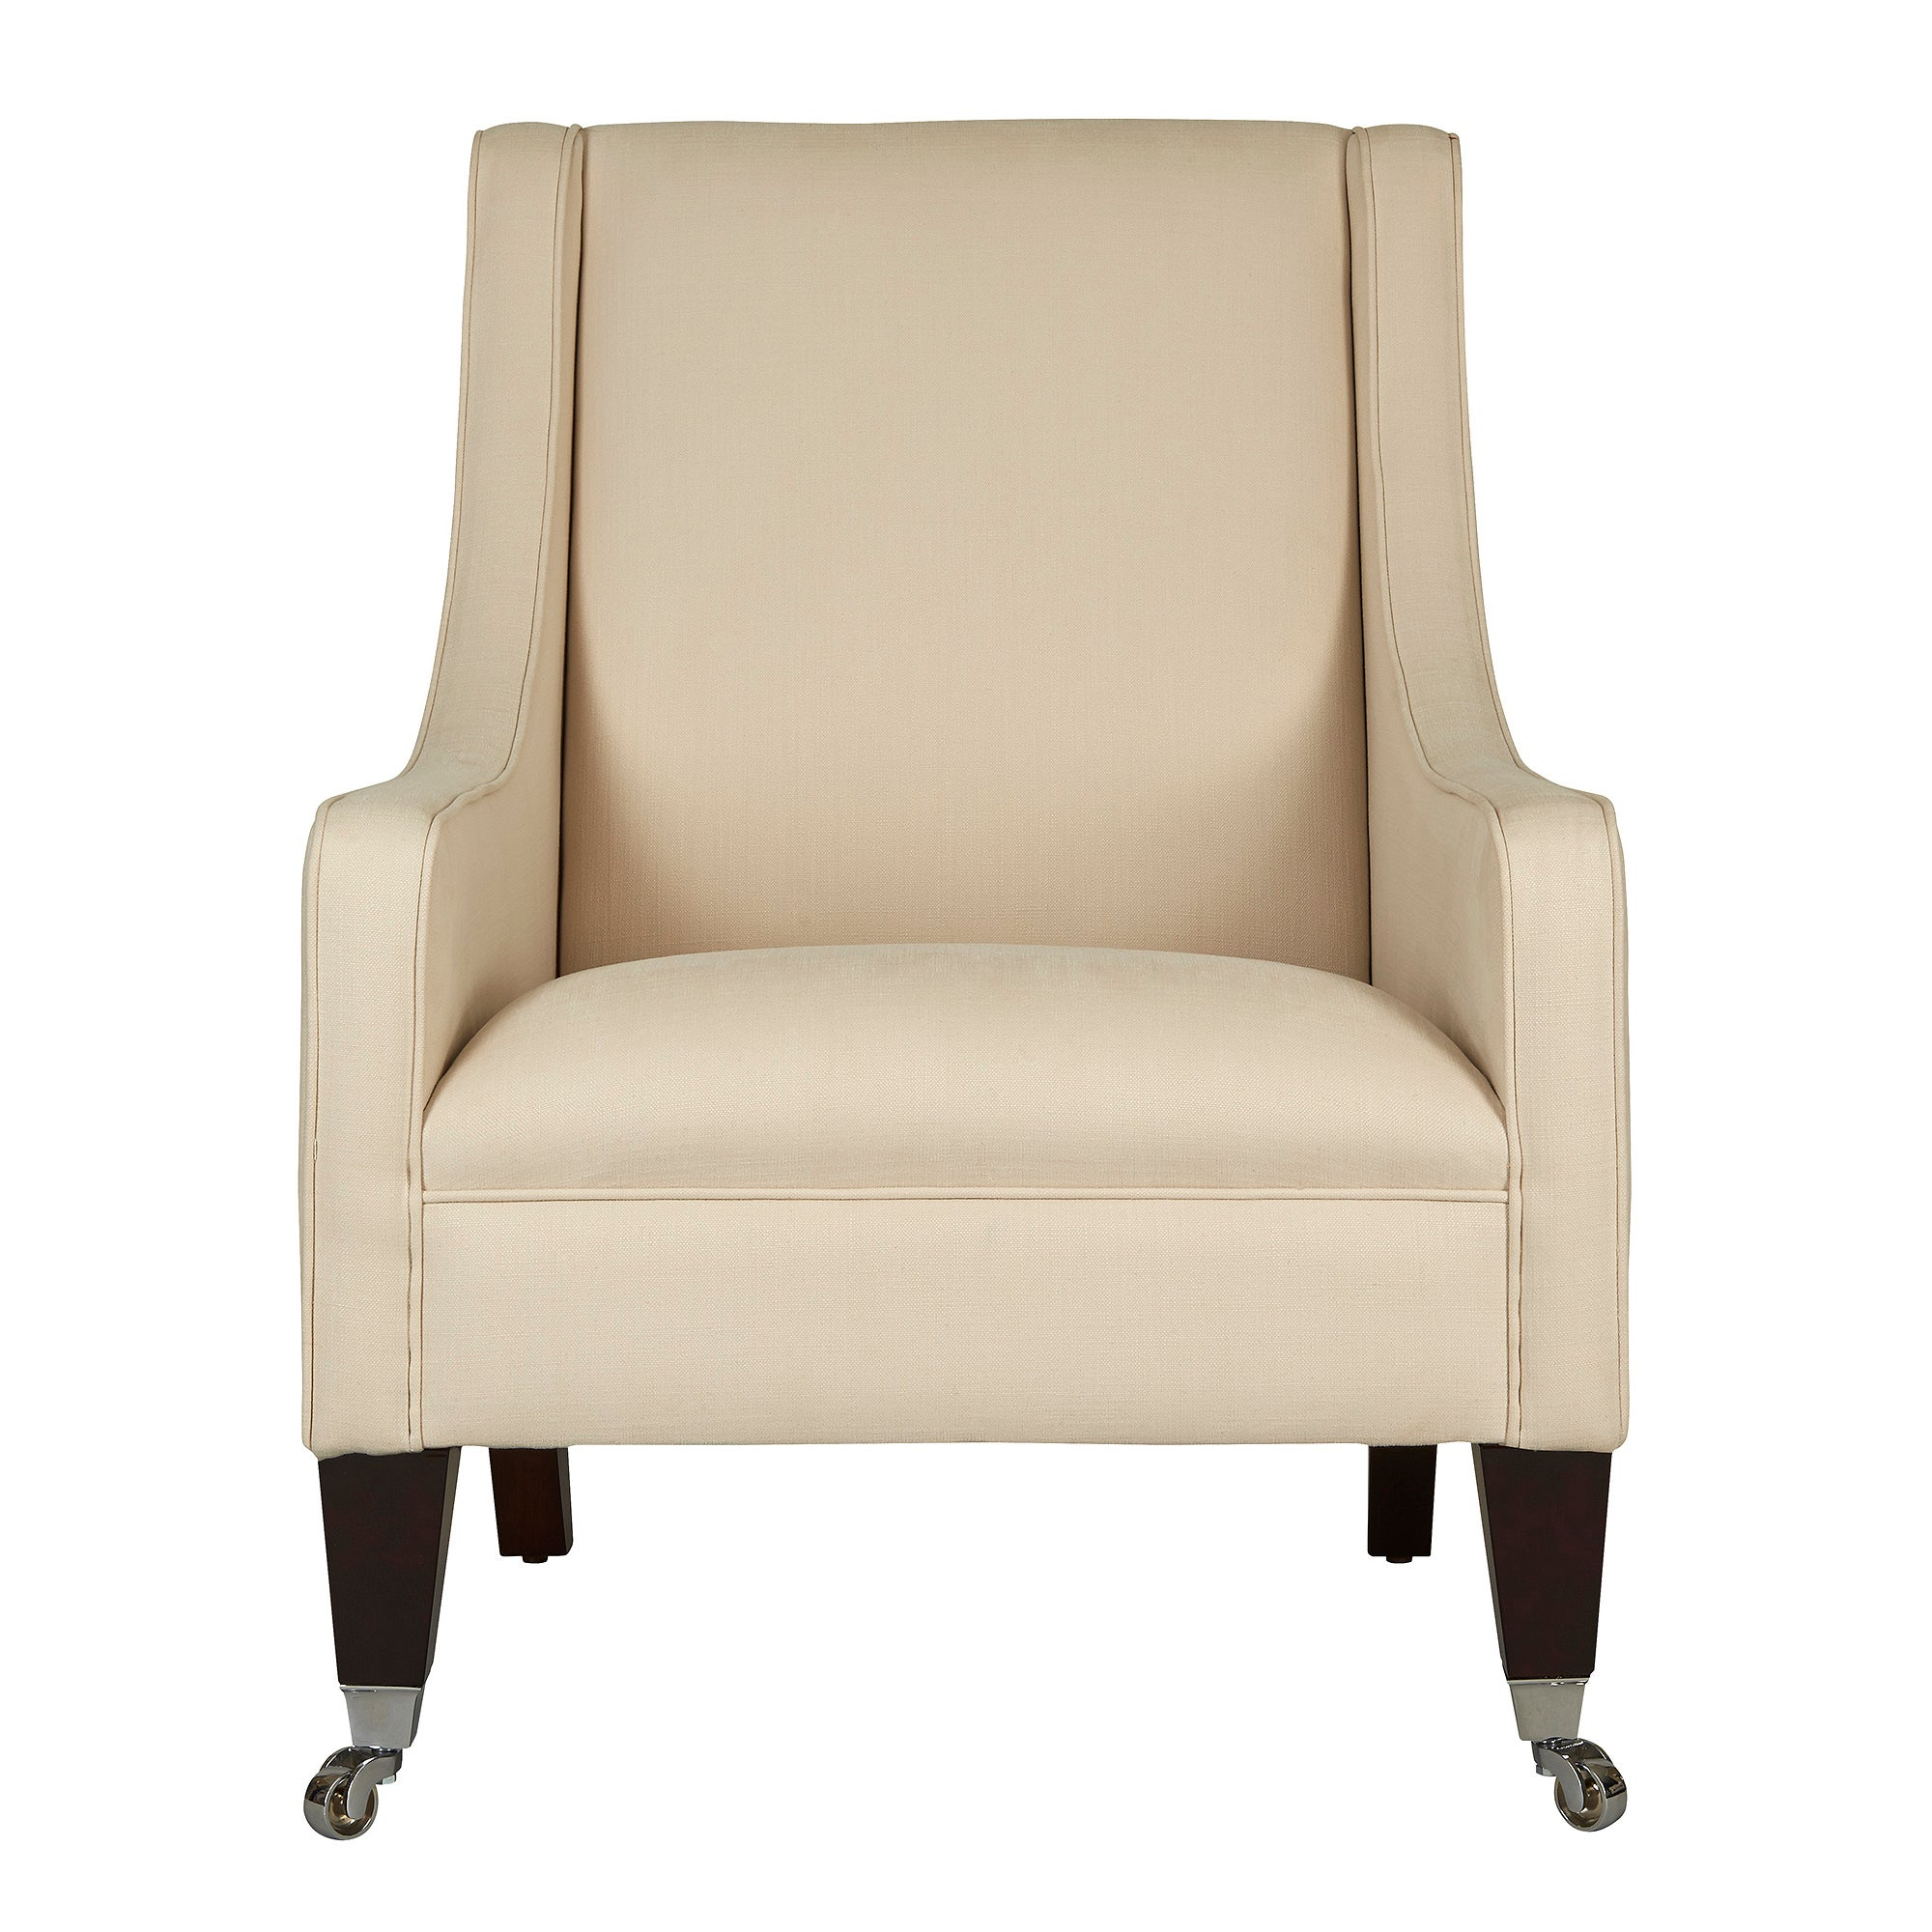 Dorma Richfield Chair